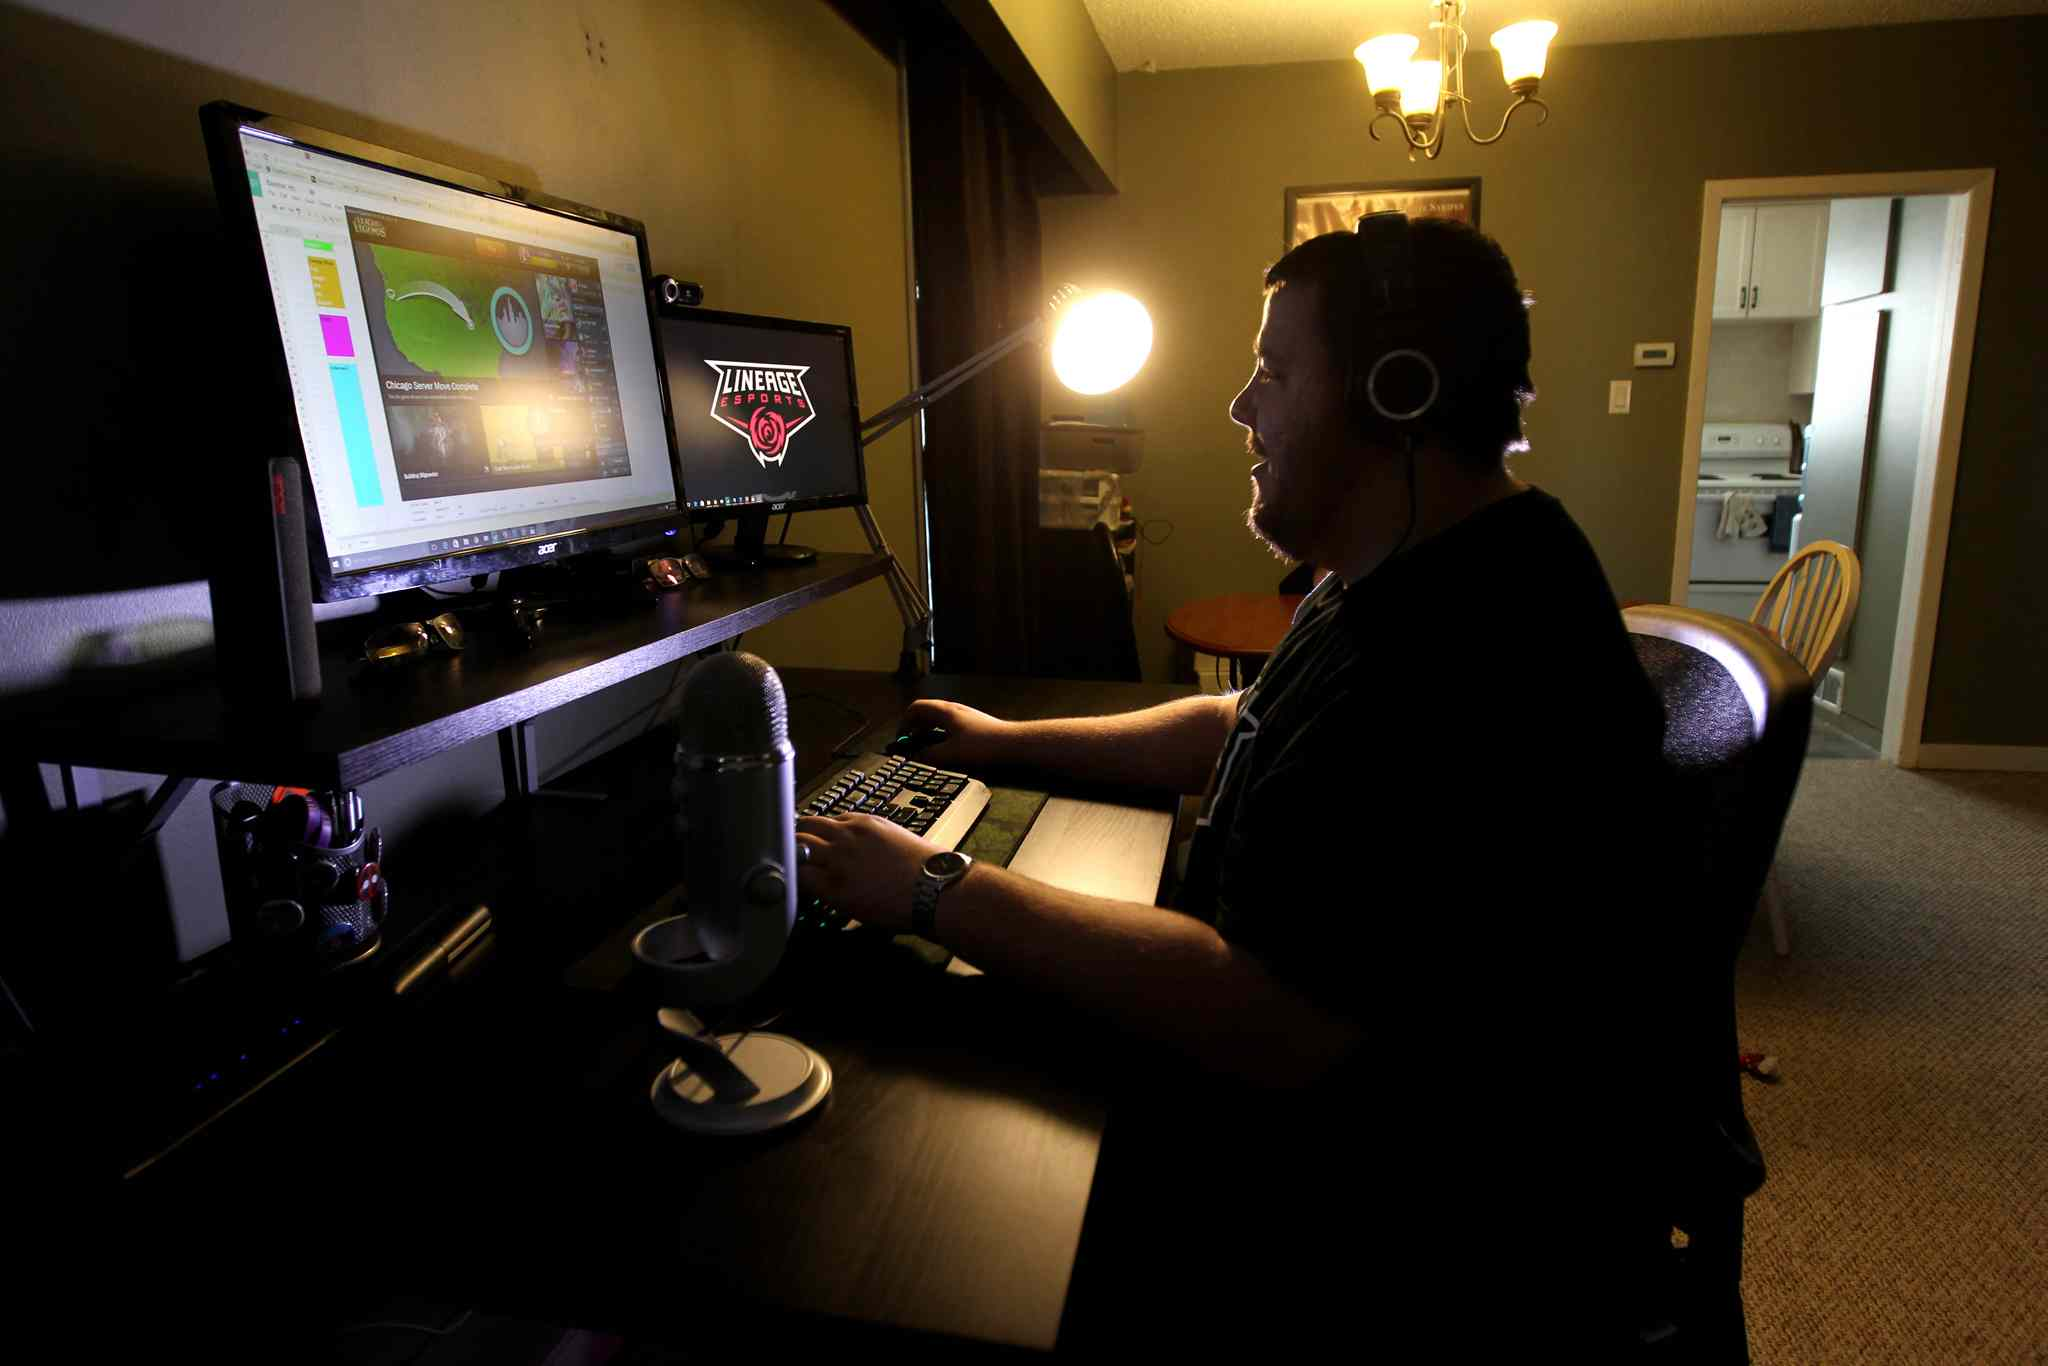 Graeme Carlson is a  team owner in eSports business, professional video game playing and is looking to own a League of Legends team to try and make it big in the eSports business. (Ruth Bonneville / Winnipeg Free Press)